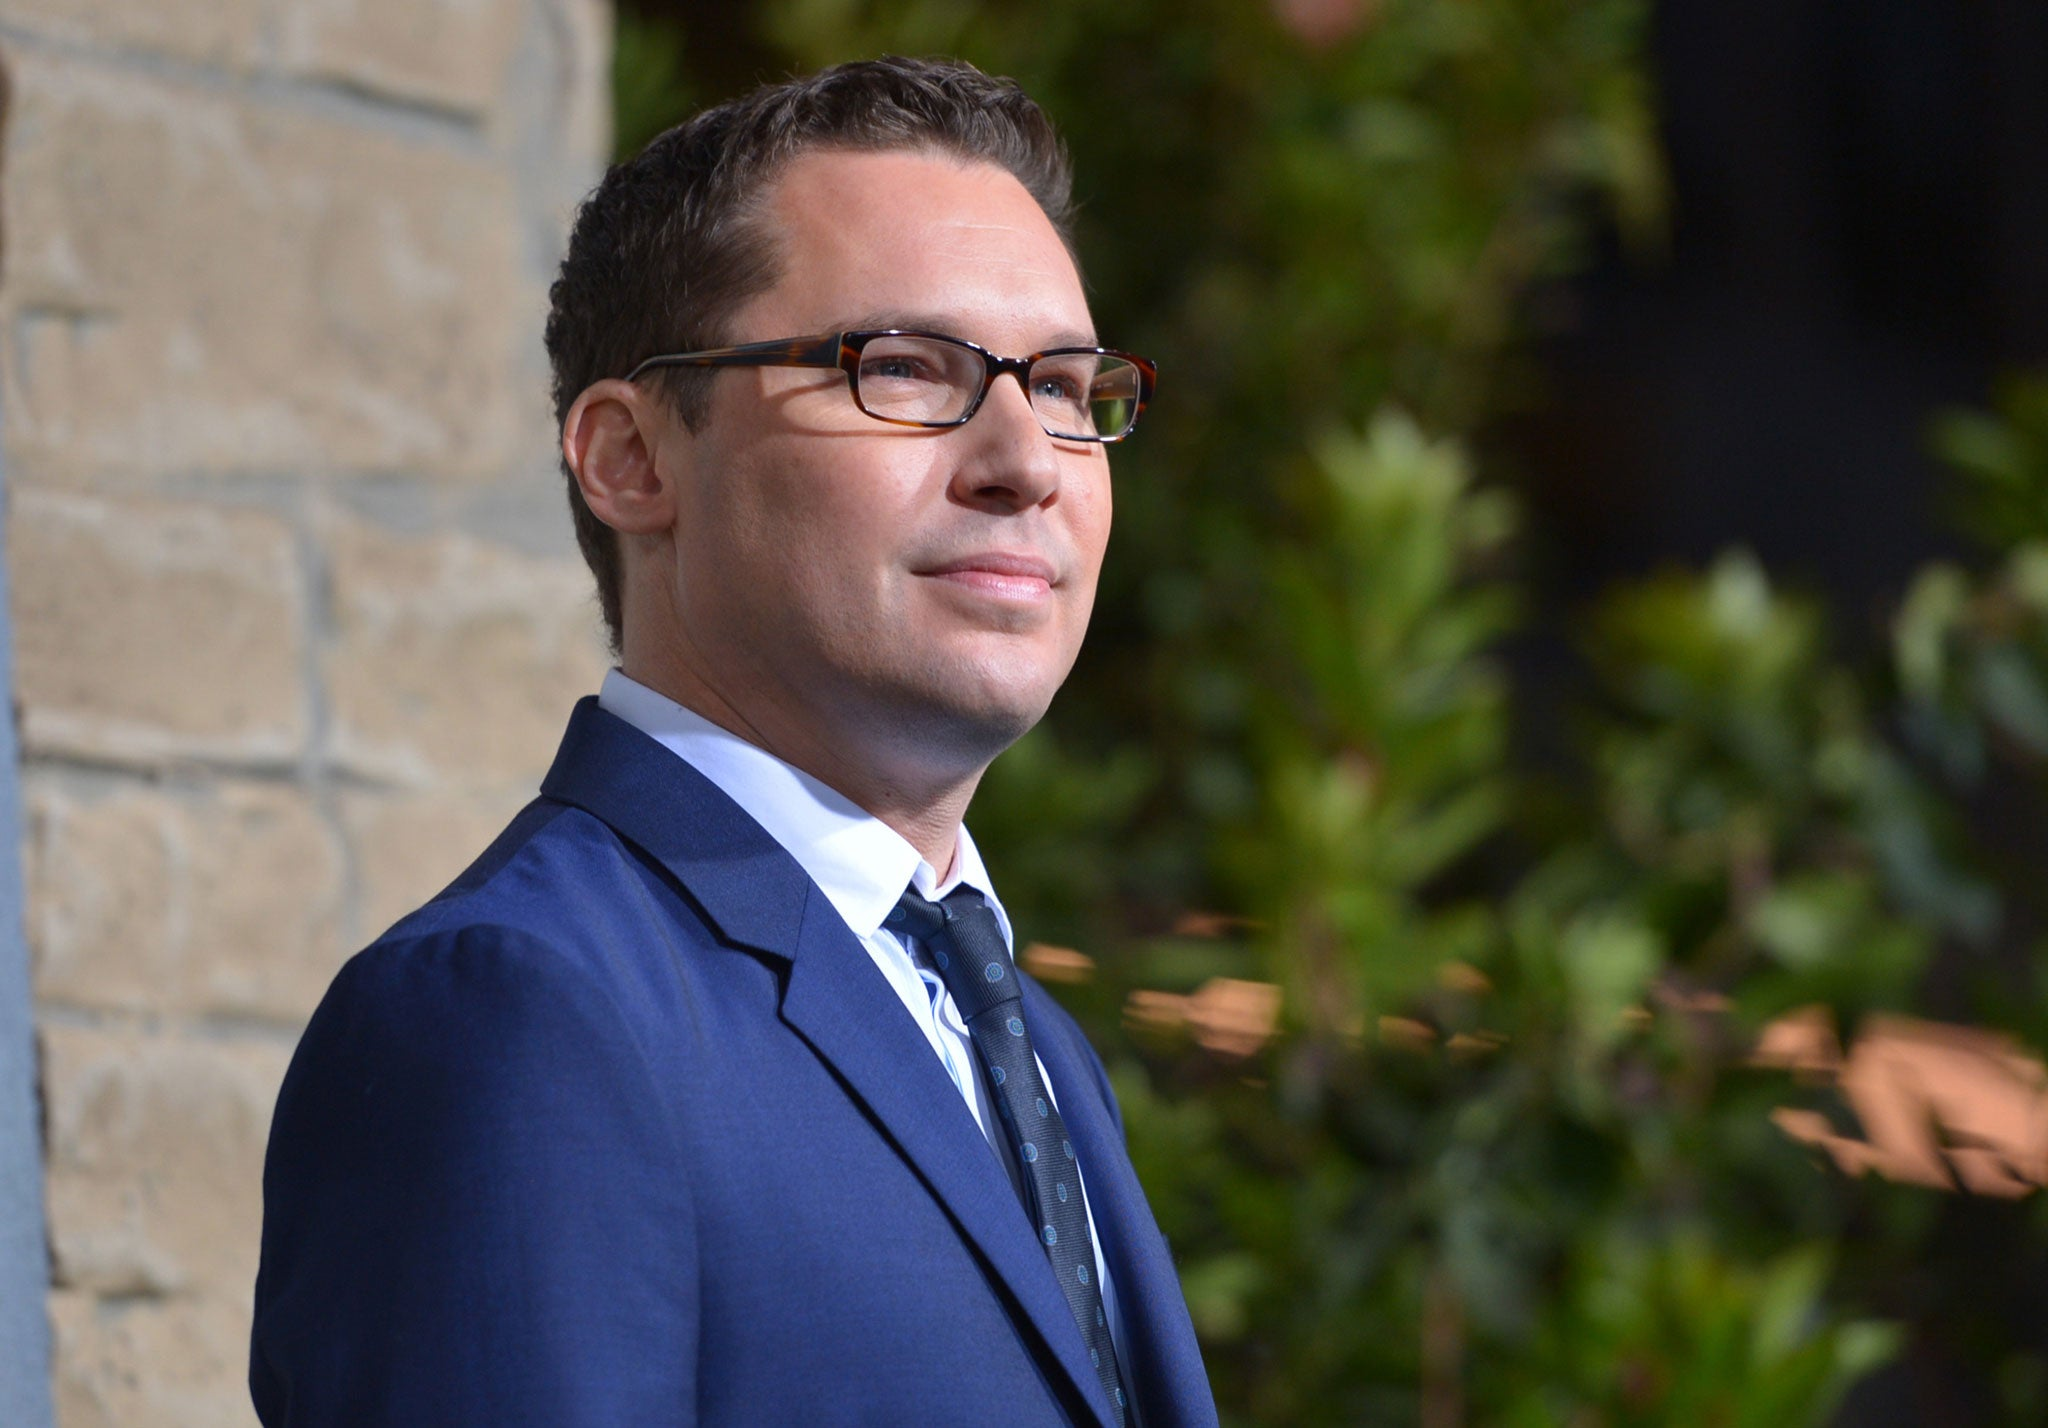 Bohemian Rhapsody director Bryan Singer reacts to film's